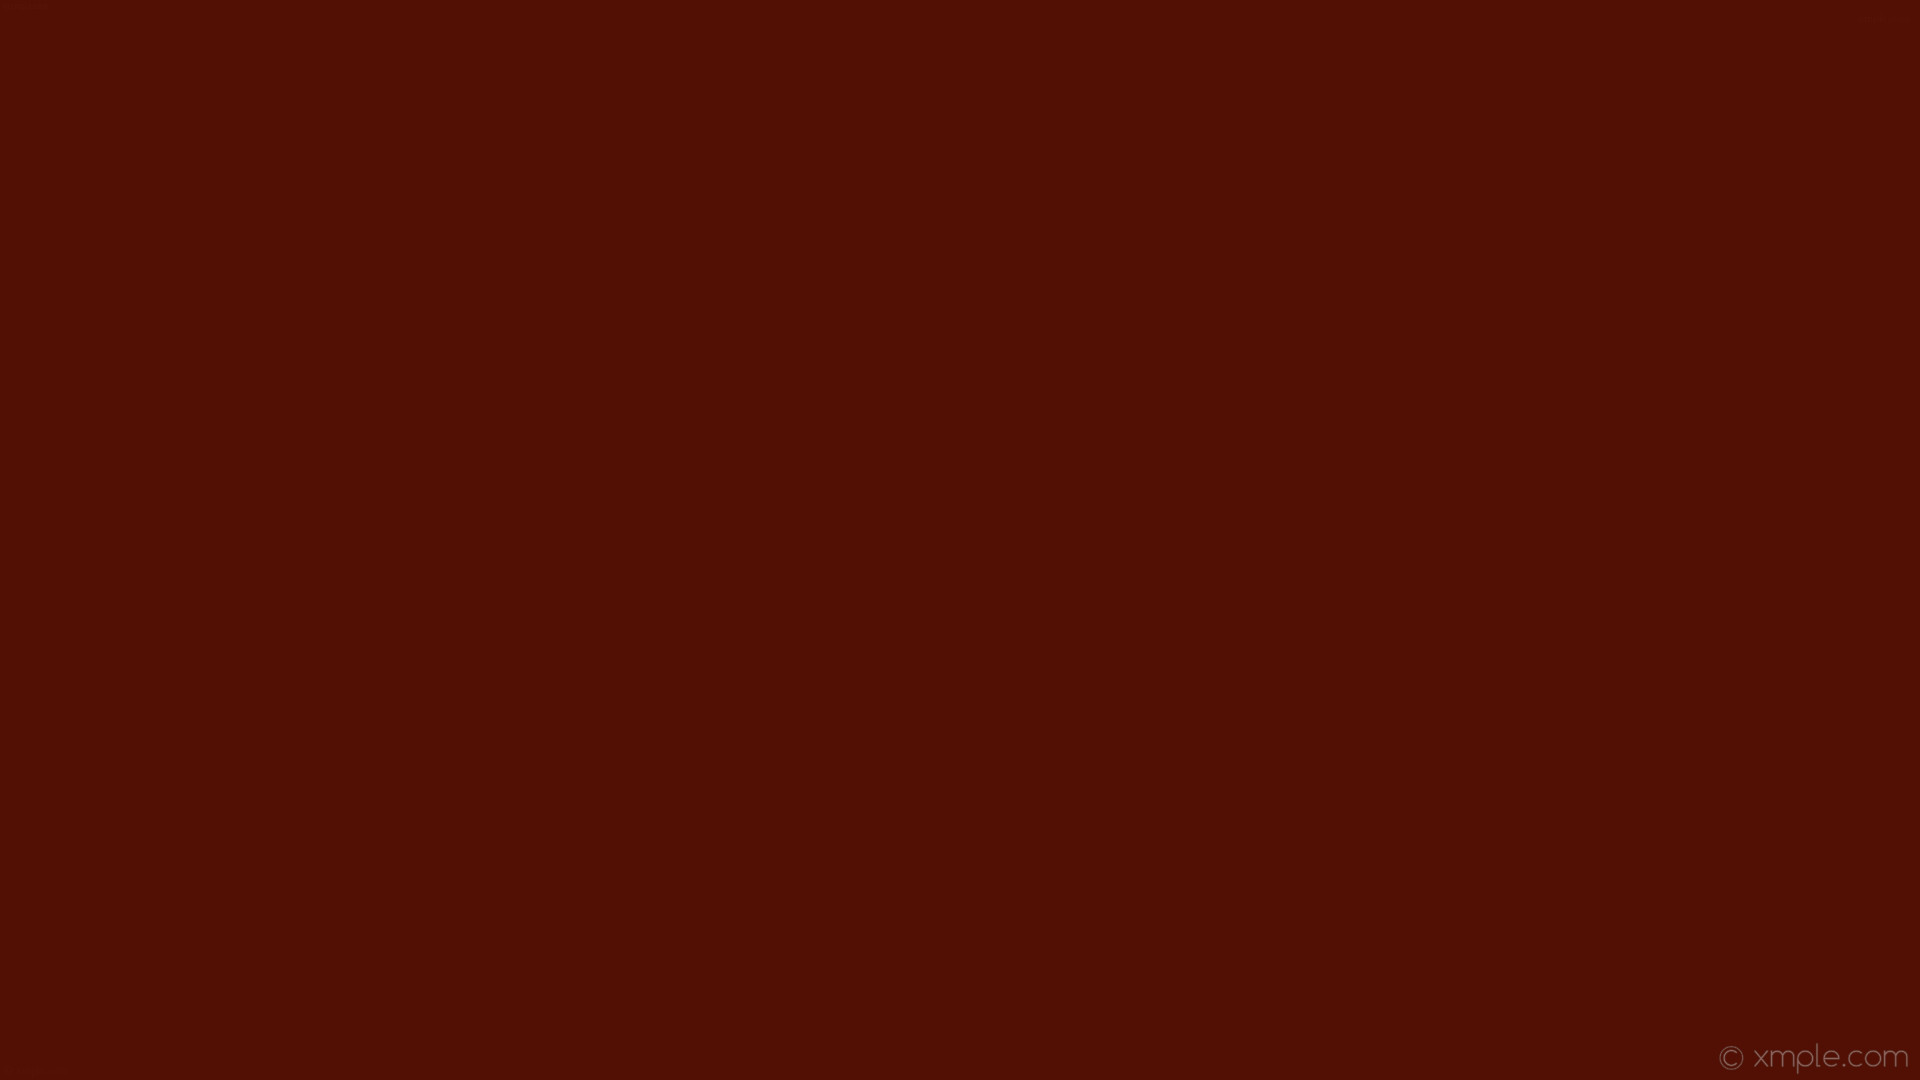 1920x1080 wallpaper solid color one colour plain single red dark red #511003